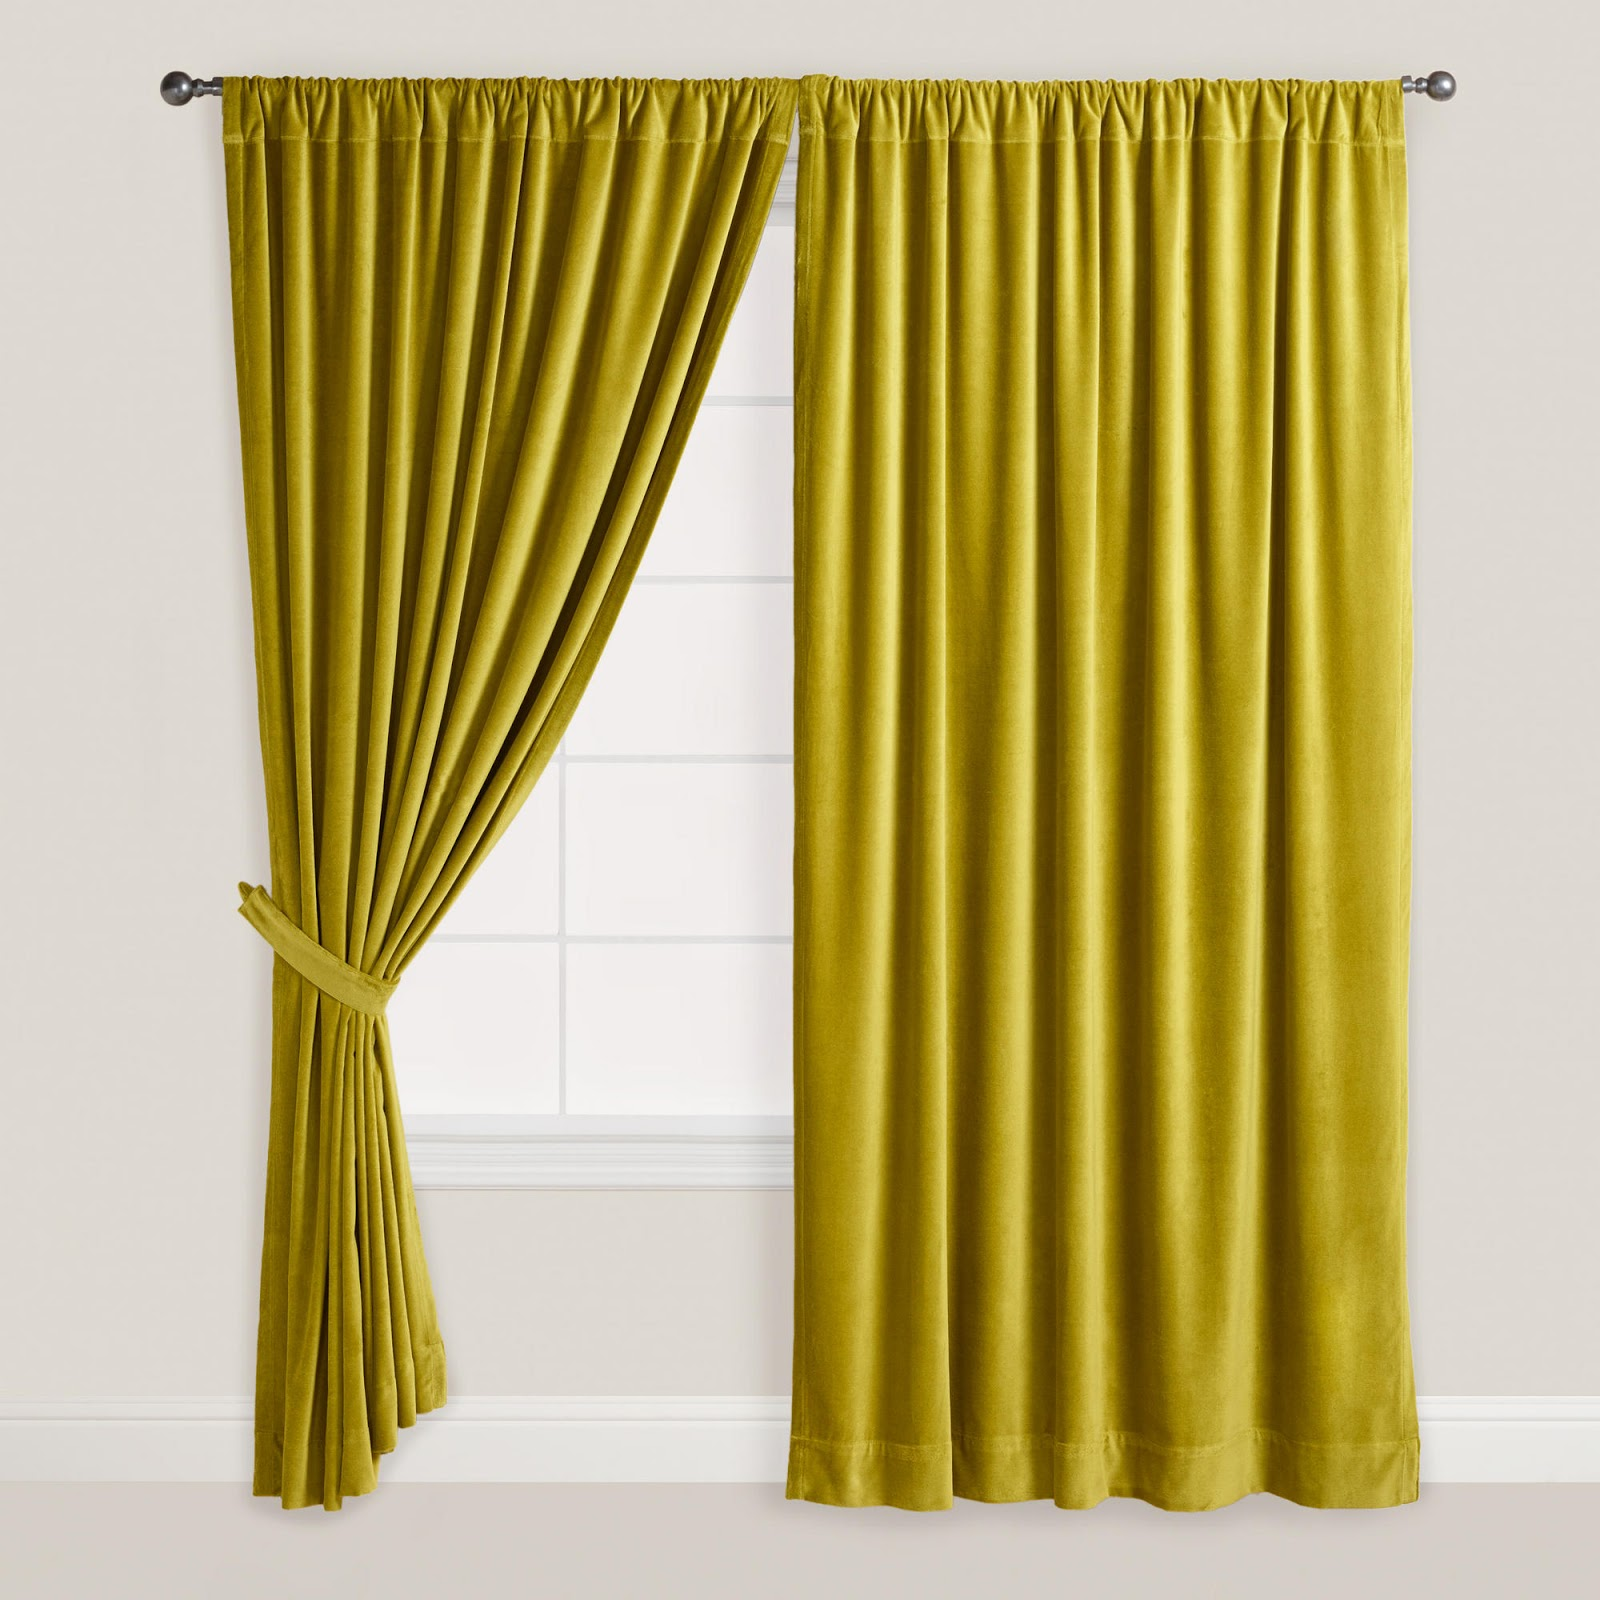 How To Make Simple Curtains For Windows Without A Sewing Machine Skylight Small